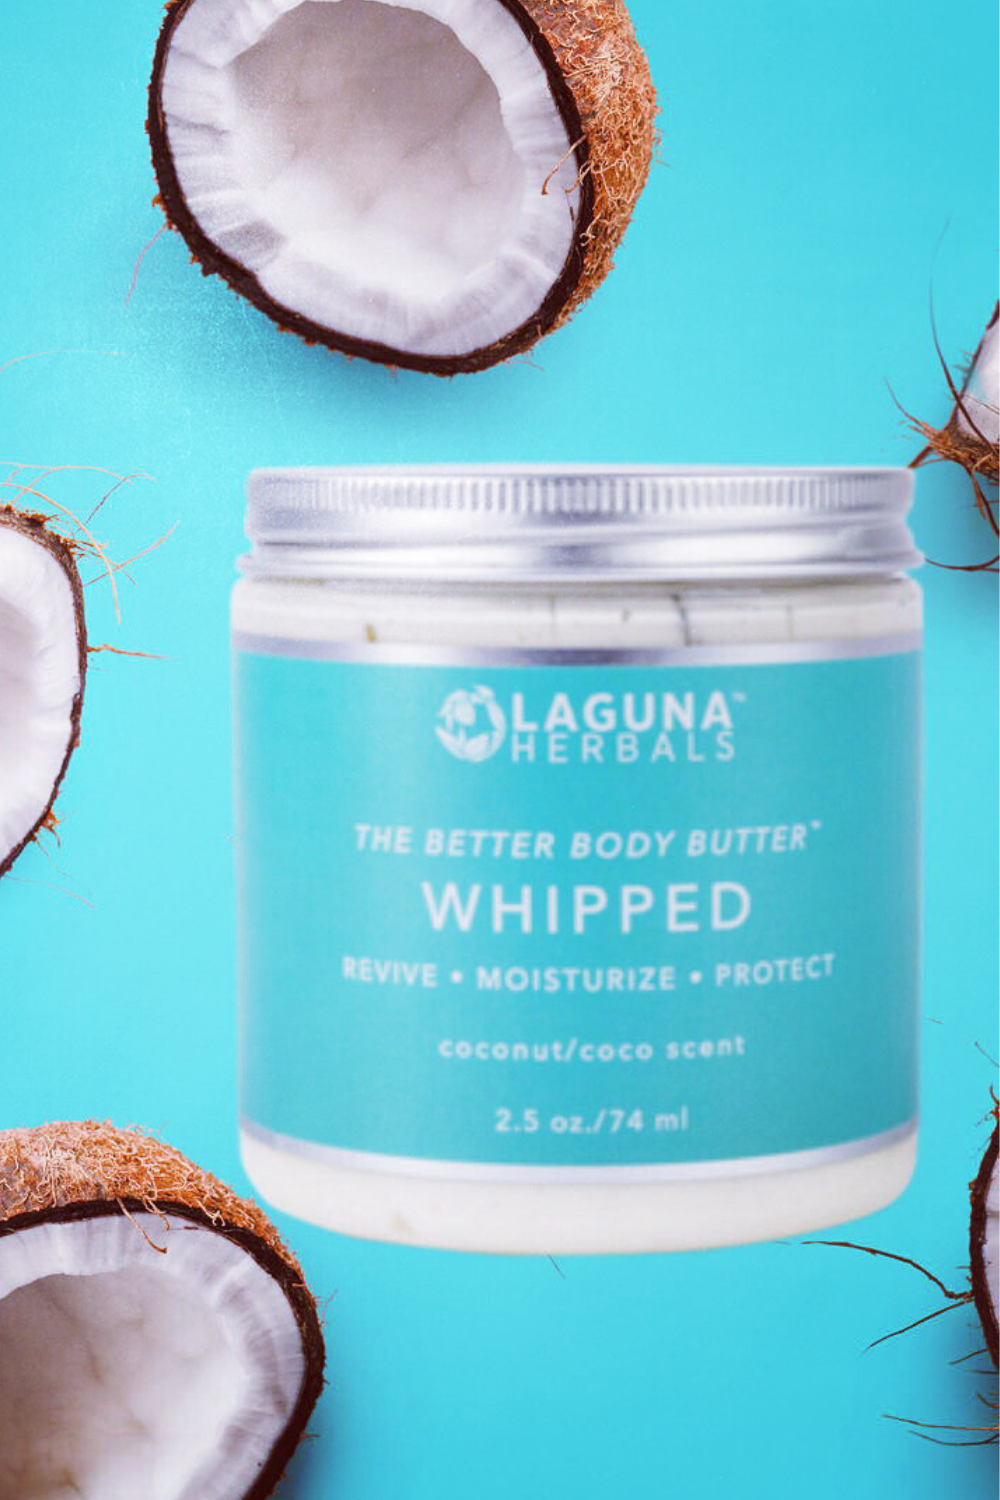 White Chocolate and Virgin Coconut  organic  butters are  WHIPPED into a decadent white cloud ☁body souffle for the most organic skin conditioner for you. #organicbodybutter #lagunaherbals #greenbeauty #organicbodycare